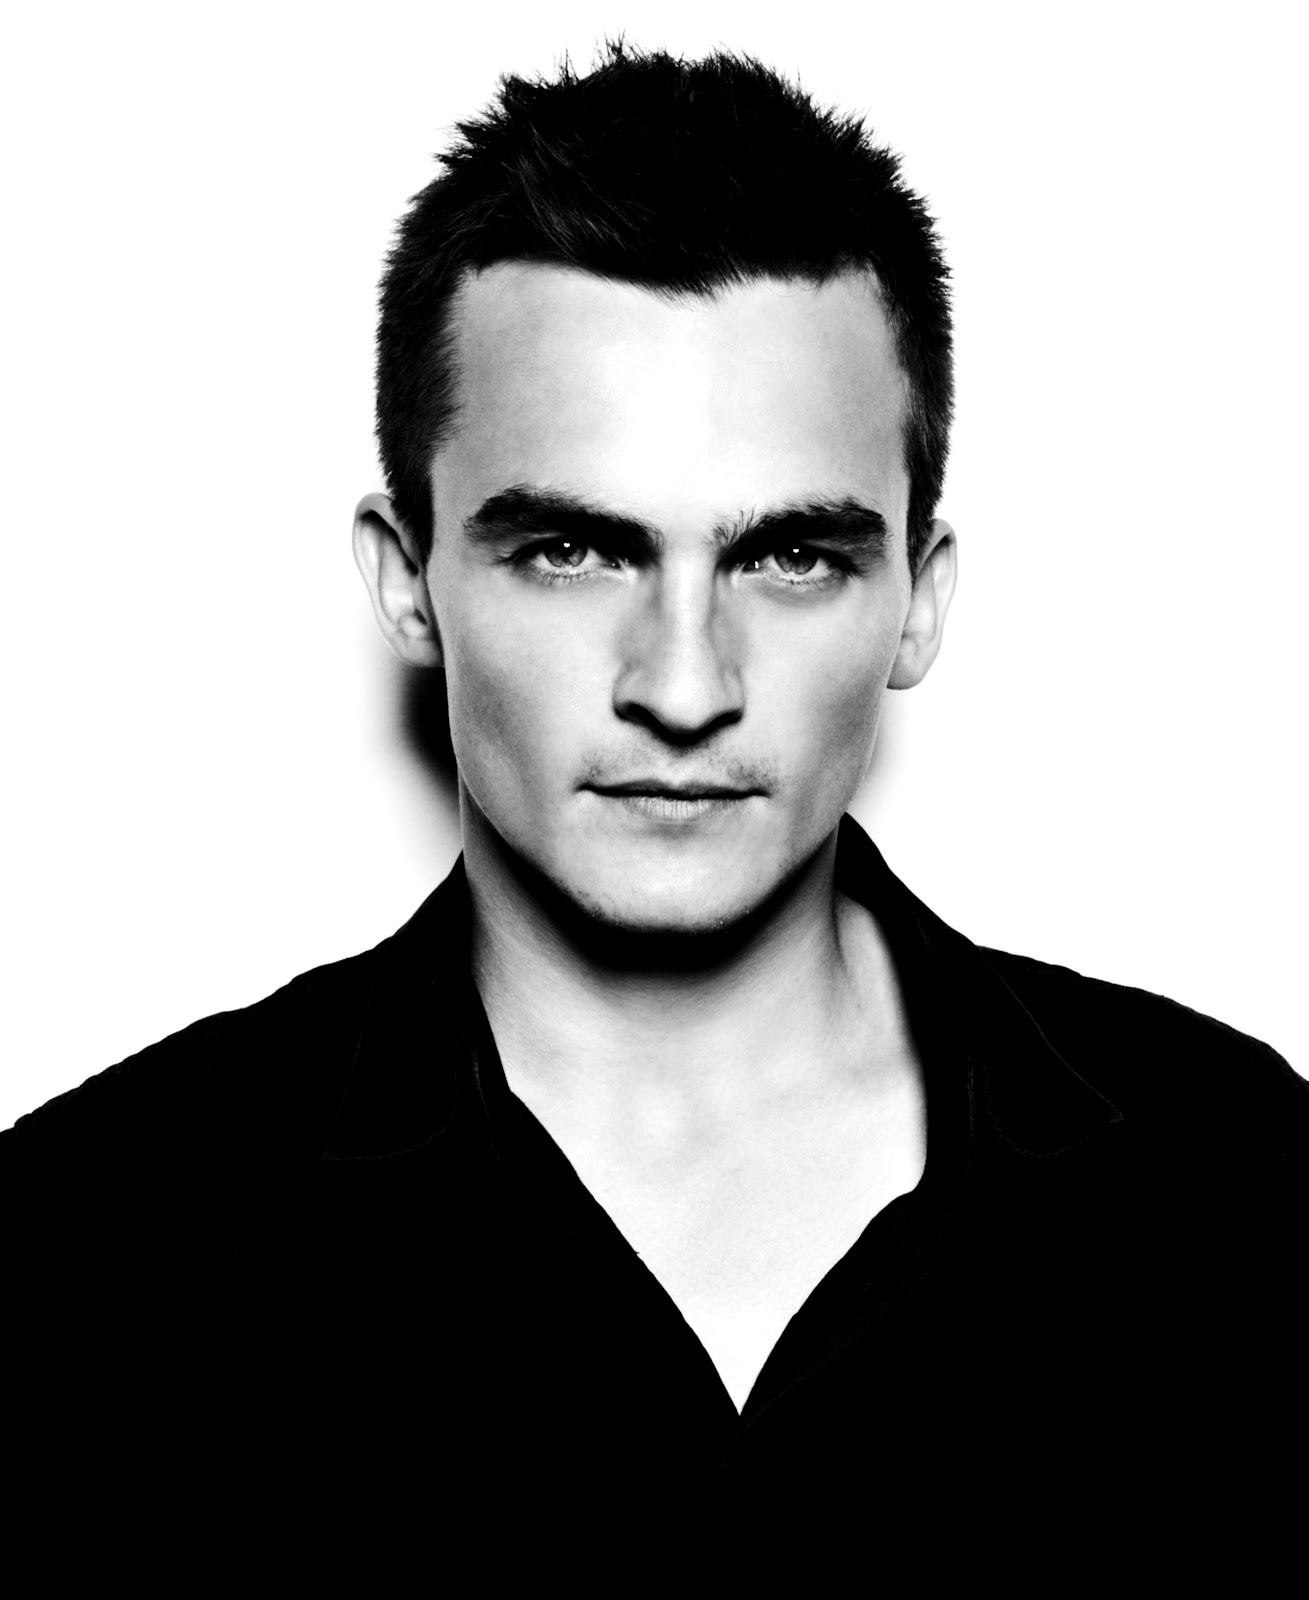 RUPERT FRIEND FREE Wallpapers amp Background images   hippowallpapers